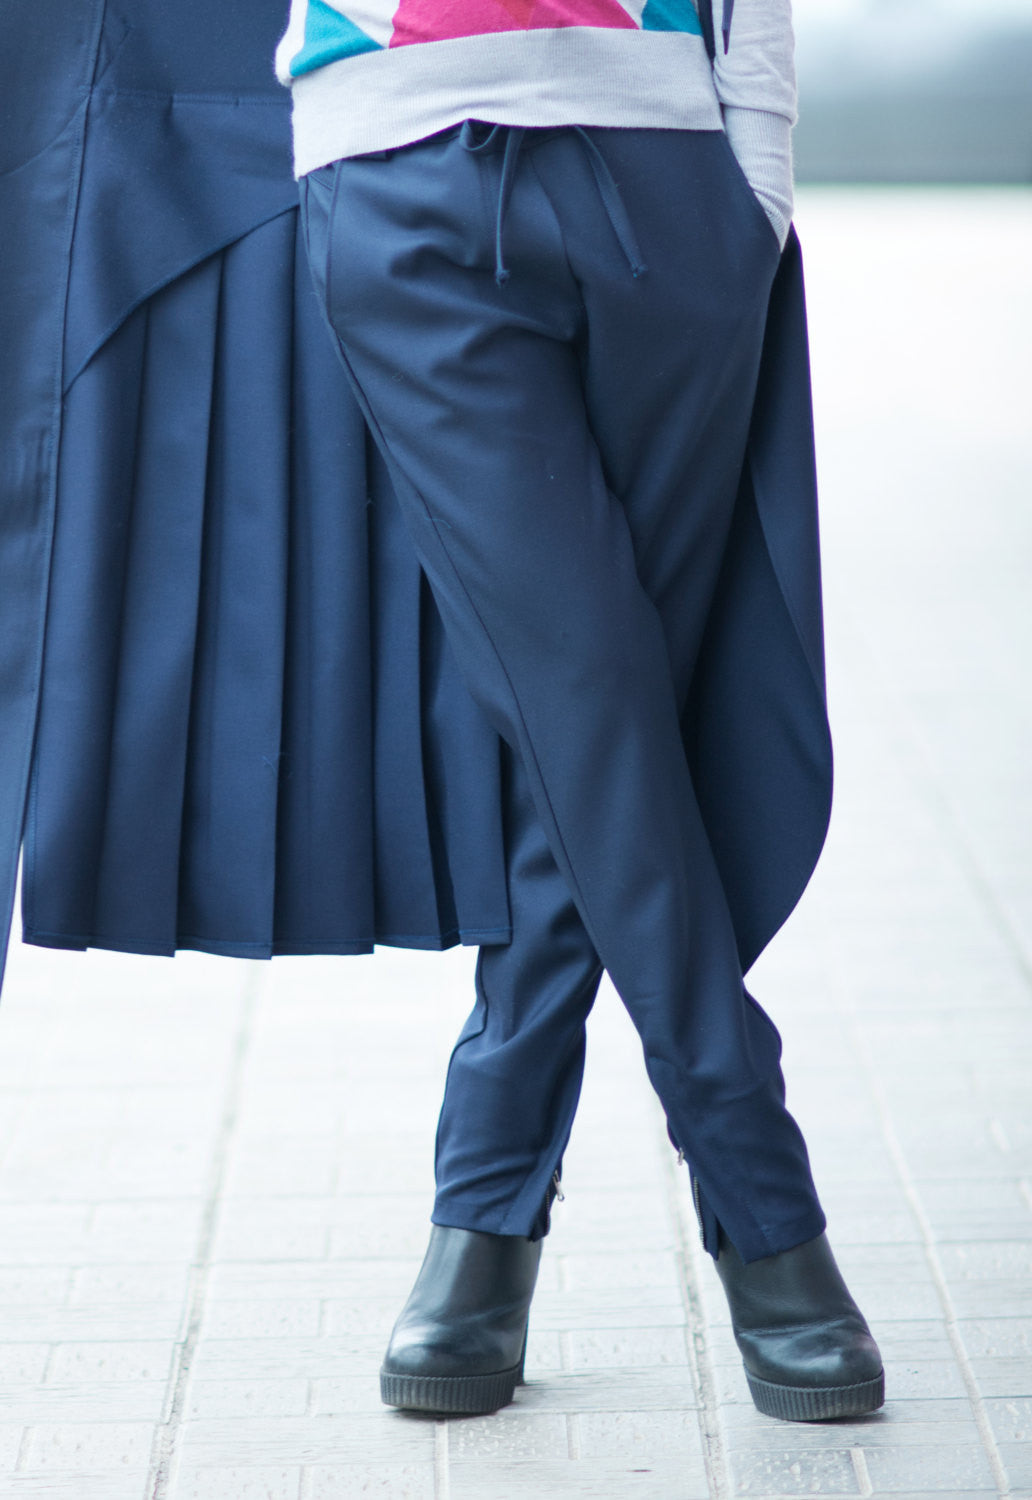 Navy Blue Drop Crotch Pants, Loose Casual Harem Pants, Sexy Stylish Cold Wool Pants with Pockets